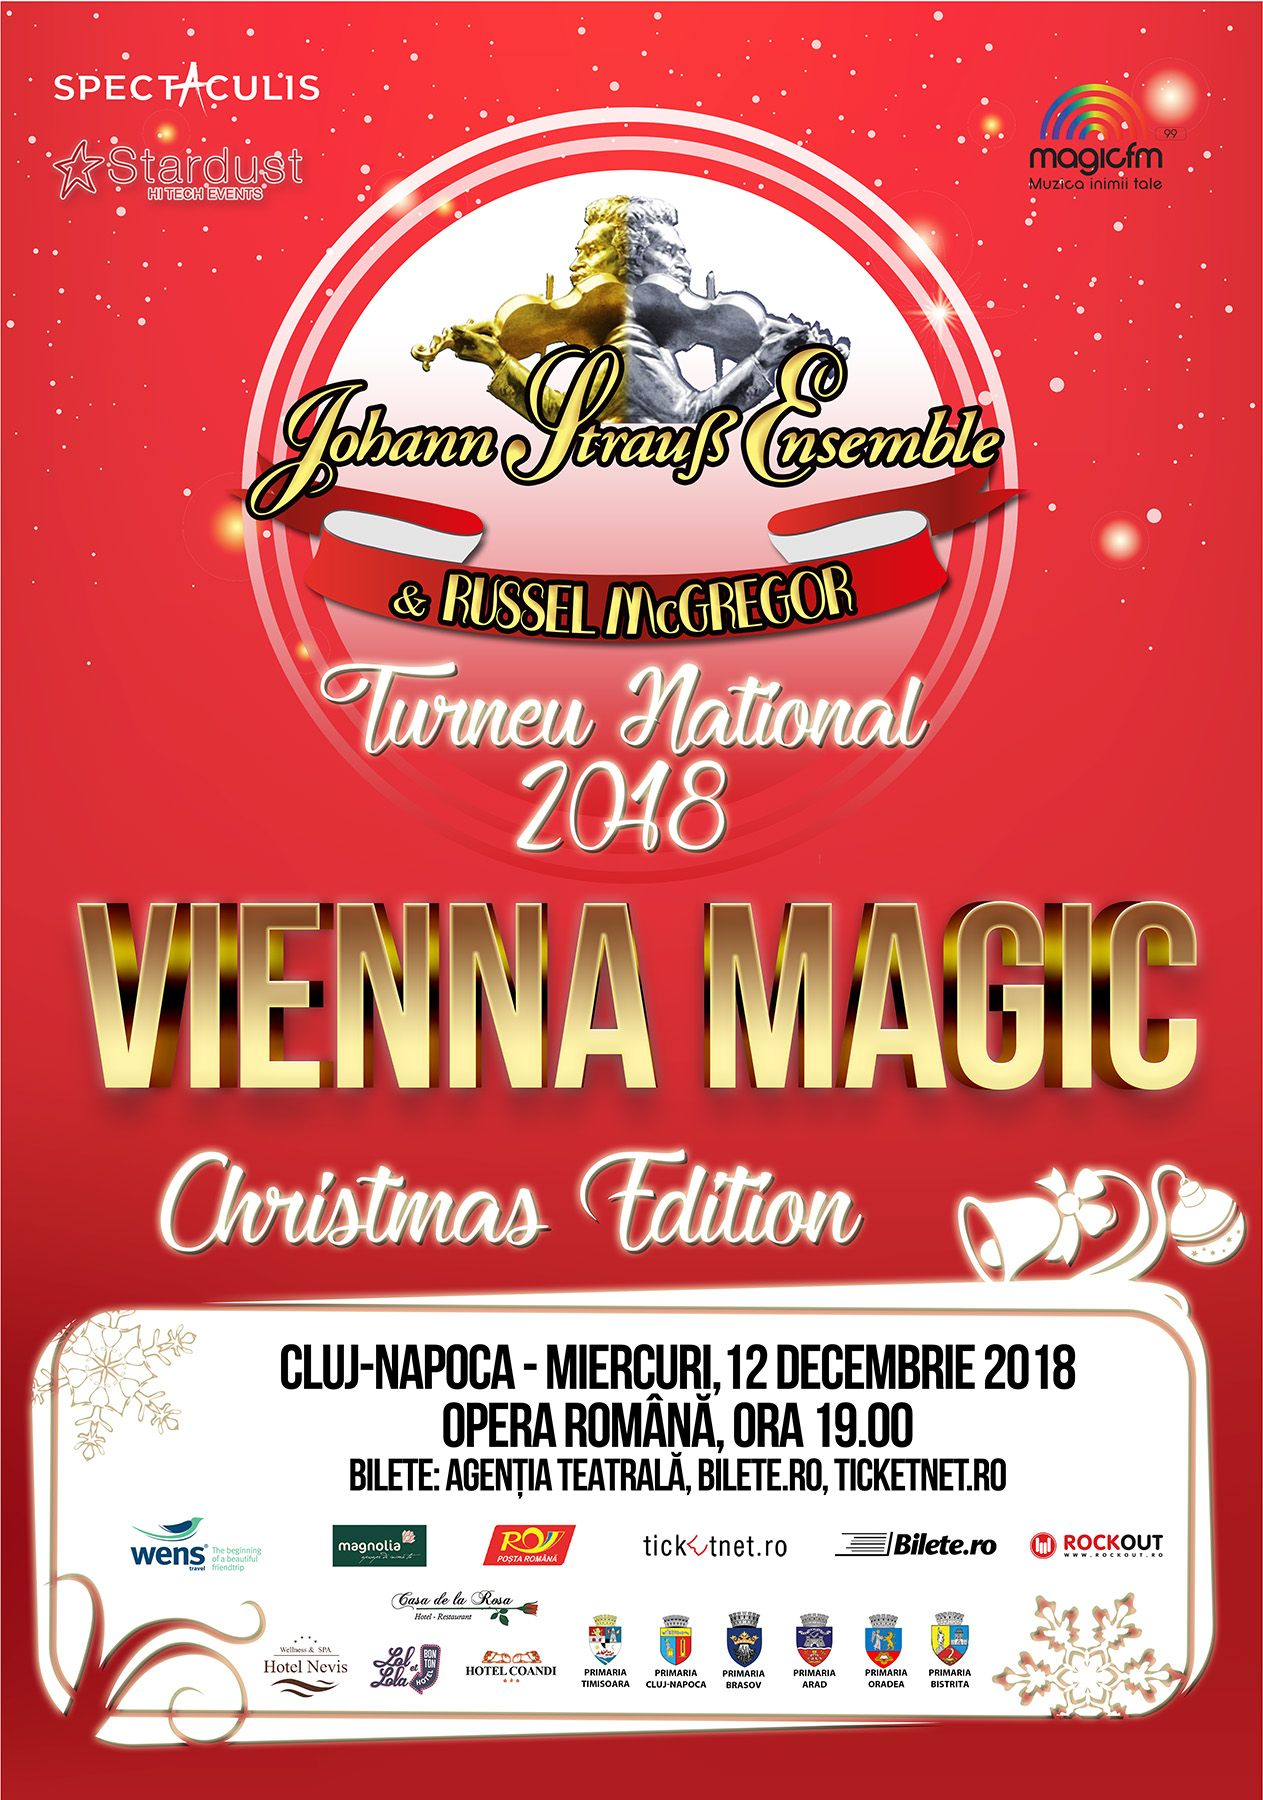 Johann Strauss Ensemble - CLUJ - Vienna Magic